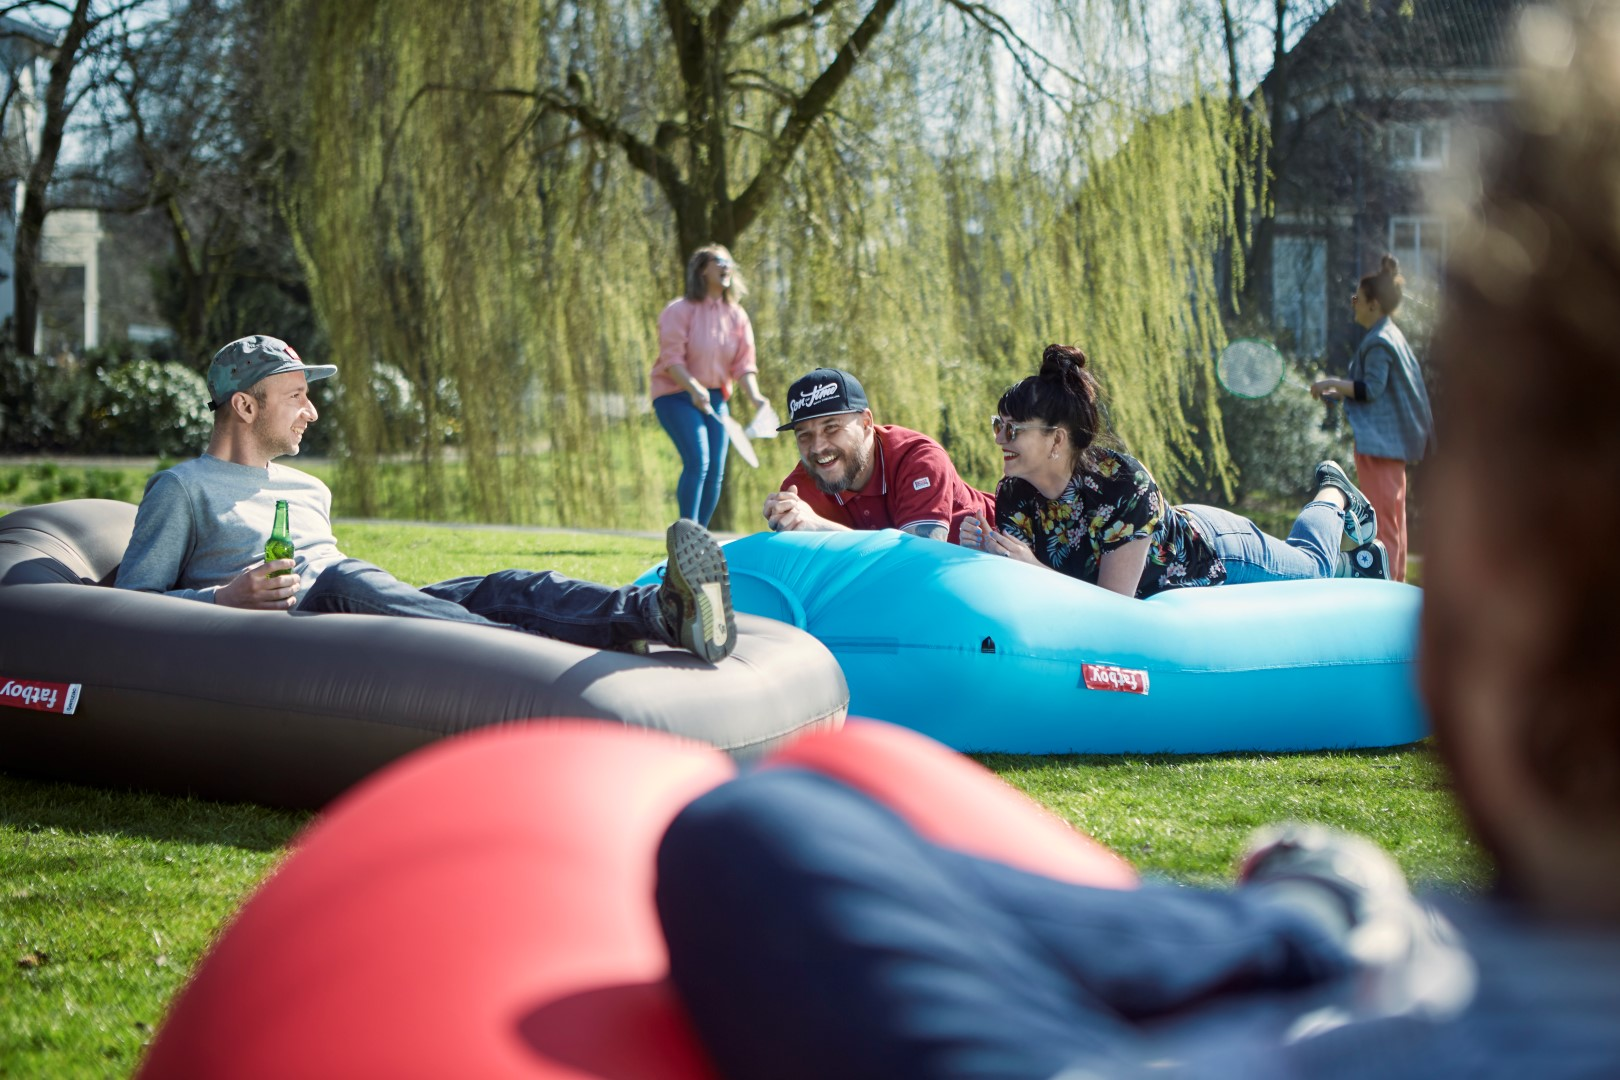 Inflatable Fatboy Loungers In Park